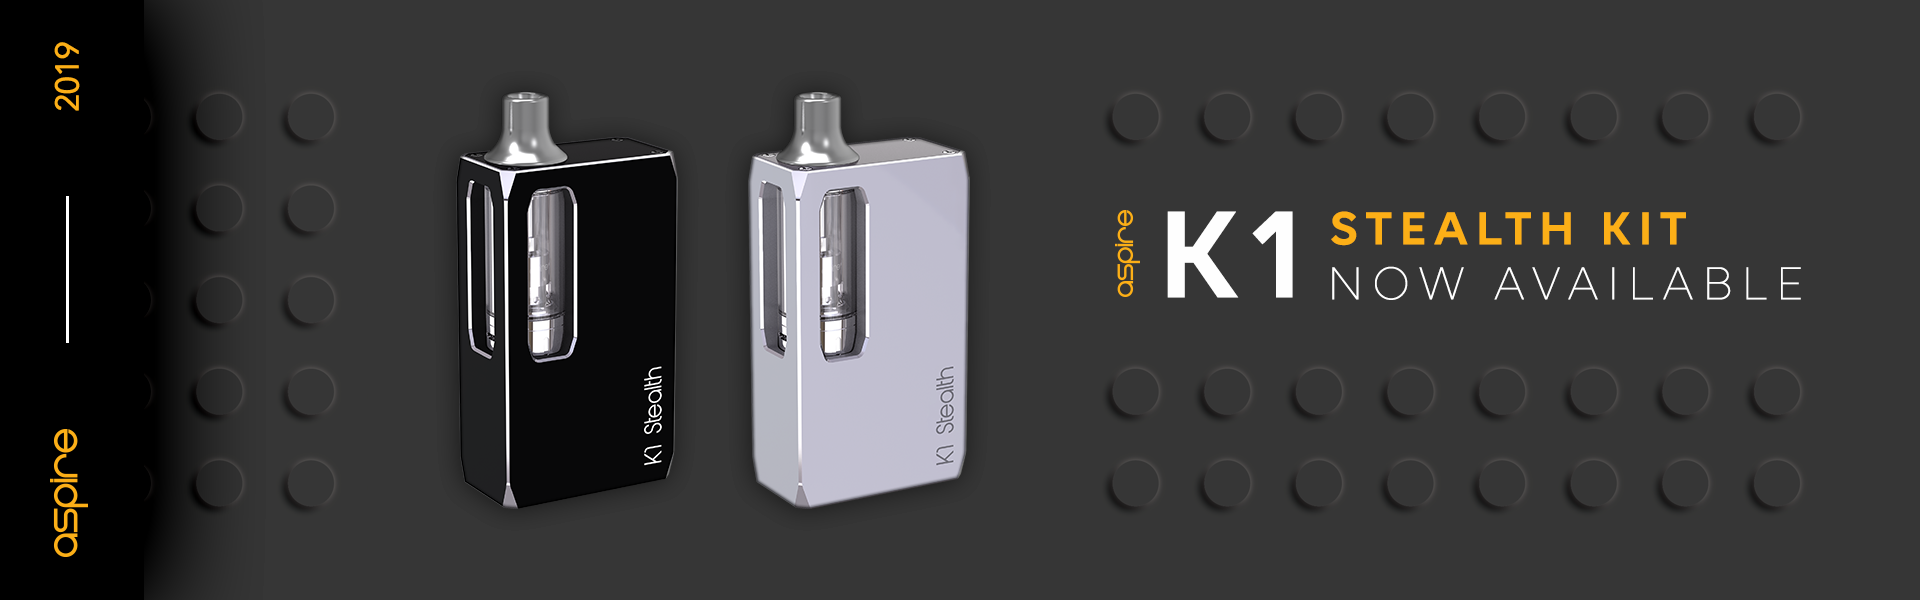 Aspire K1 Stealth Kit is now available to buy wholesale at Pacific Smoke